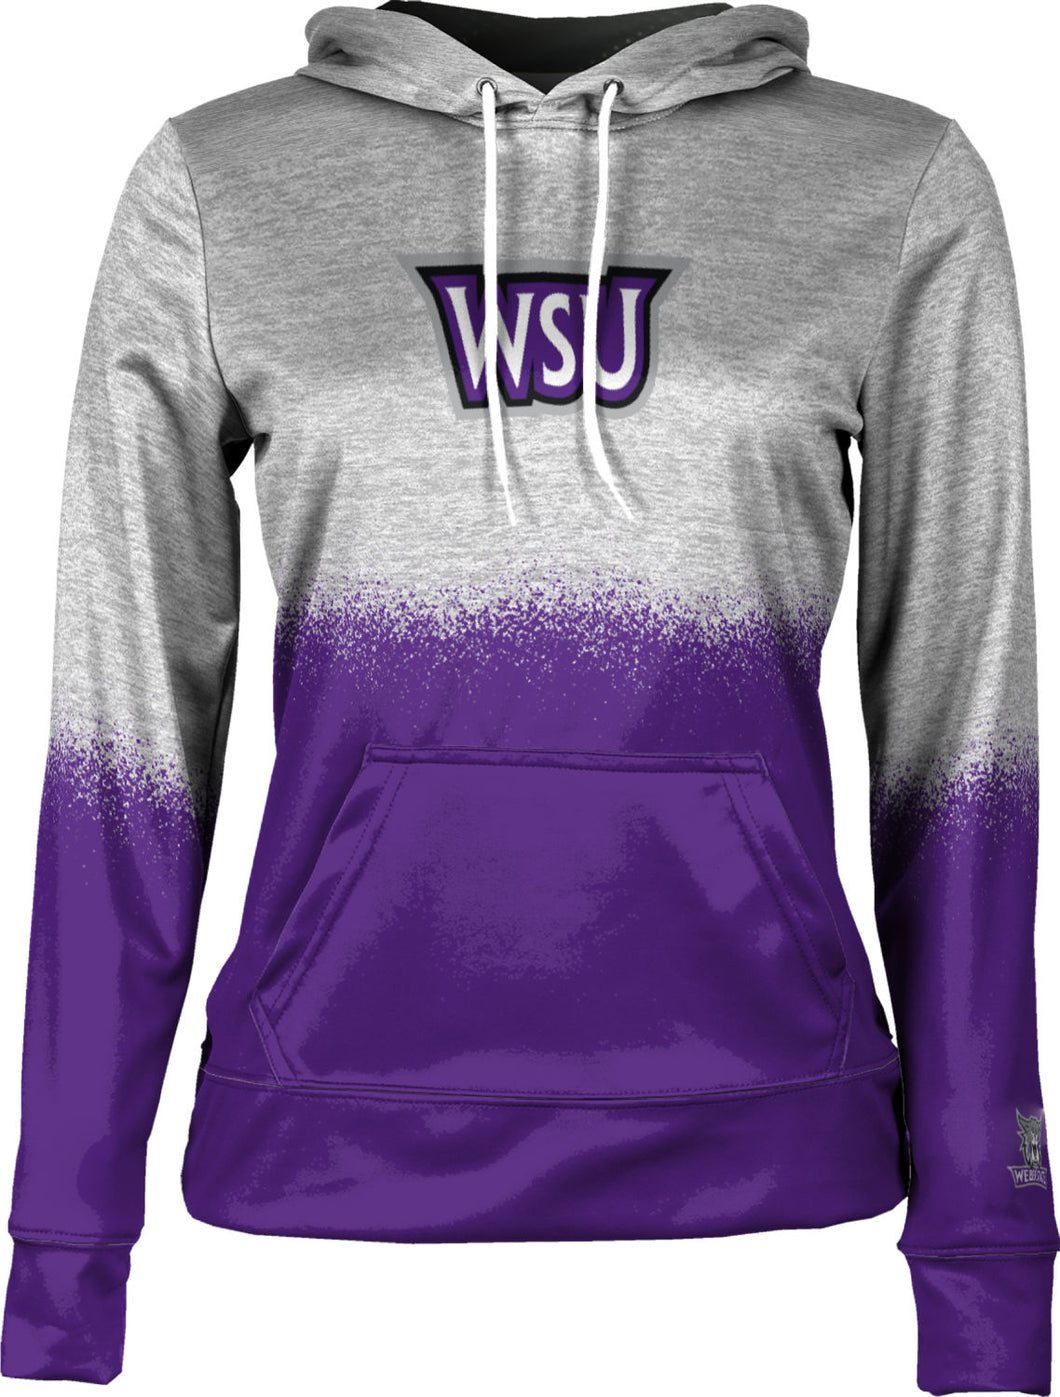 Weber State University: Girls' Pullover Hoodie - Spray